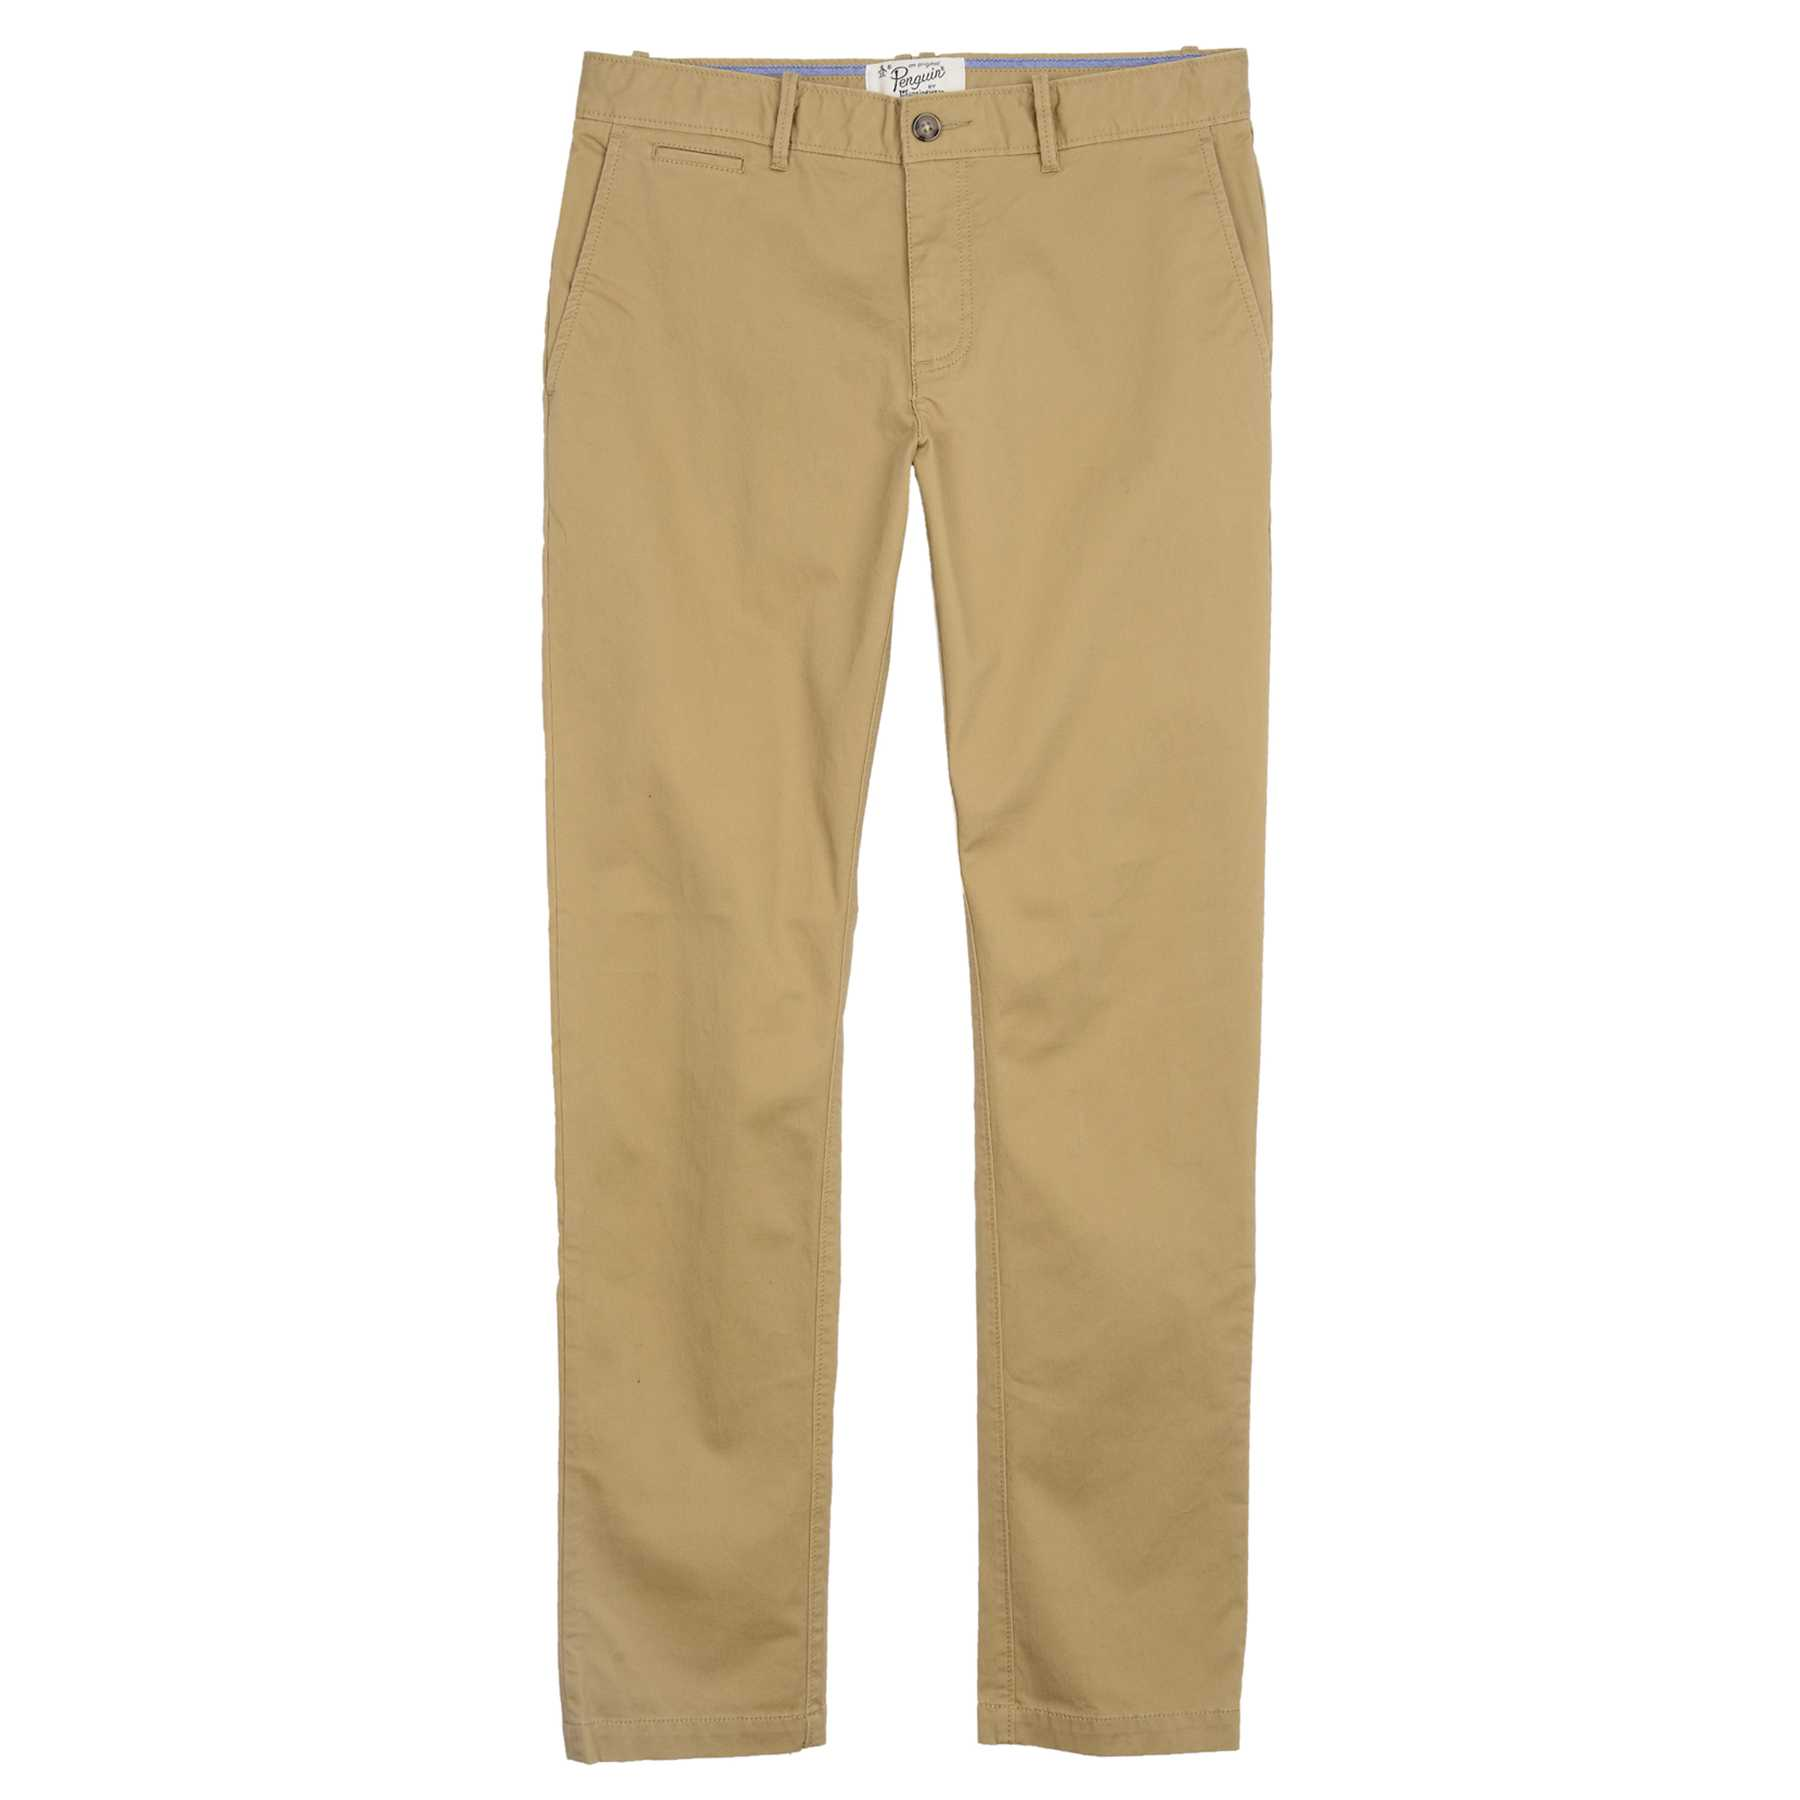 Original Penguin P55 BEDFORD SLIM CHINO